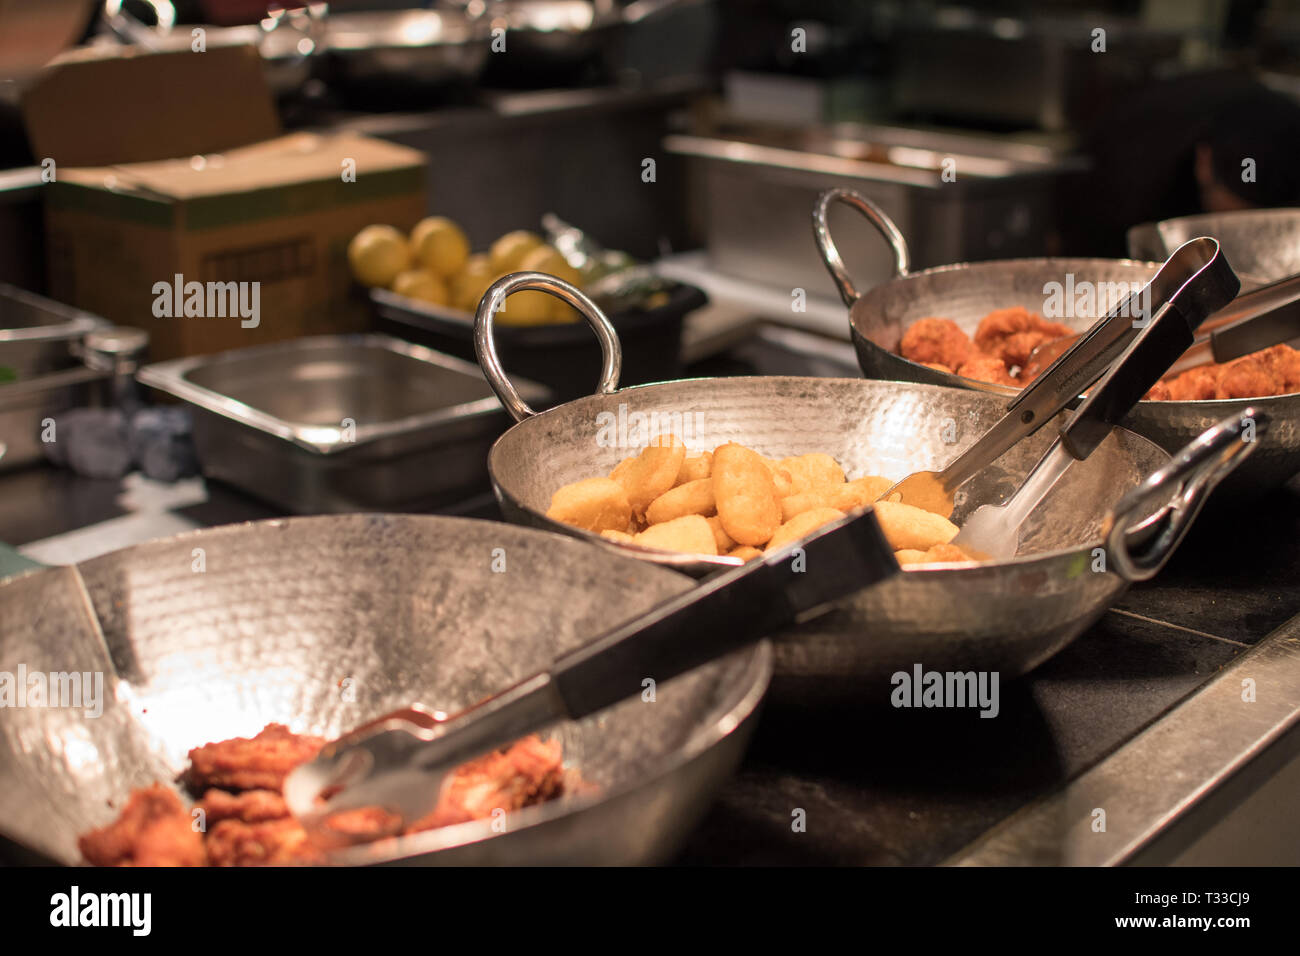 Buffet restaurant with three pans of friend food including chicken wings, chicken nuggets on display under a counter light - Stock Image